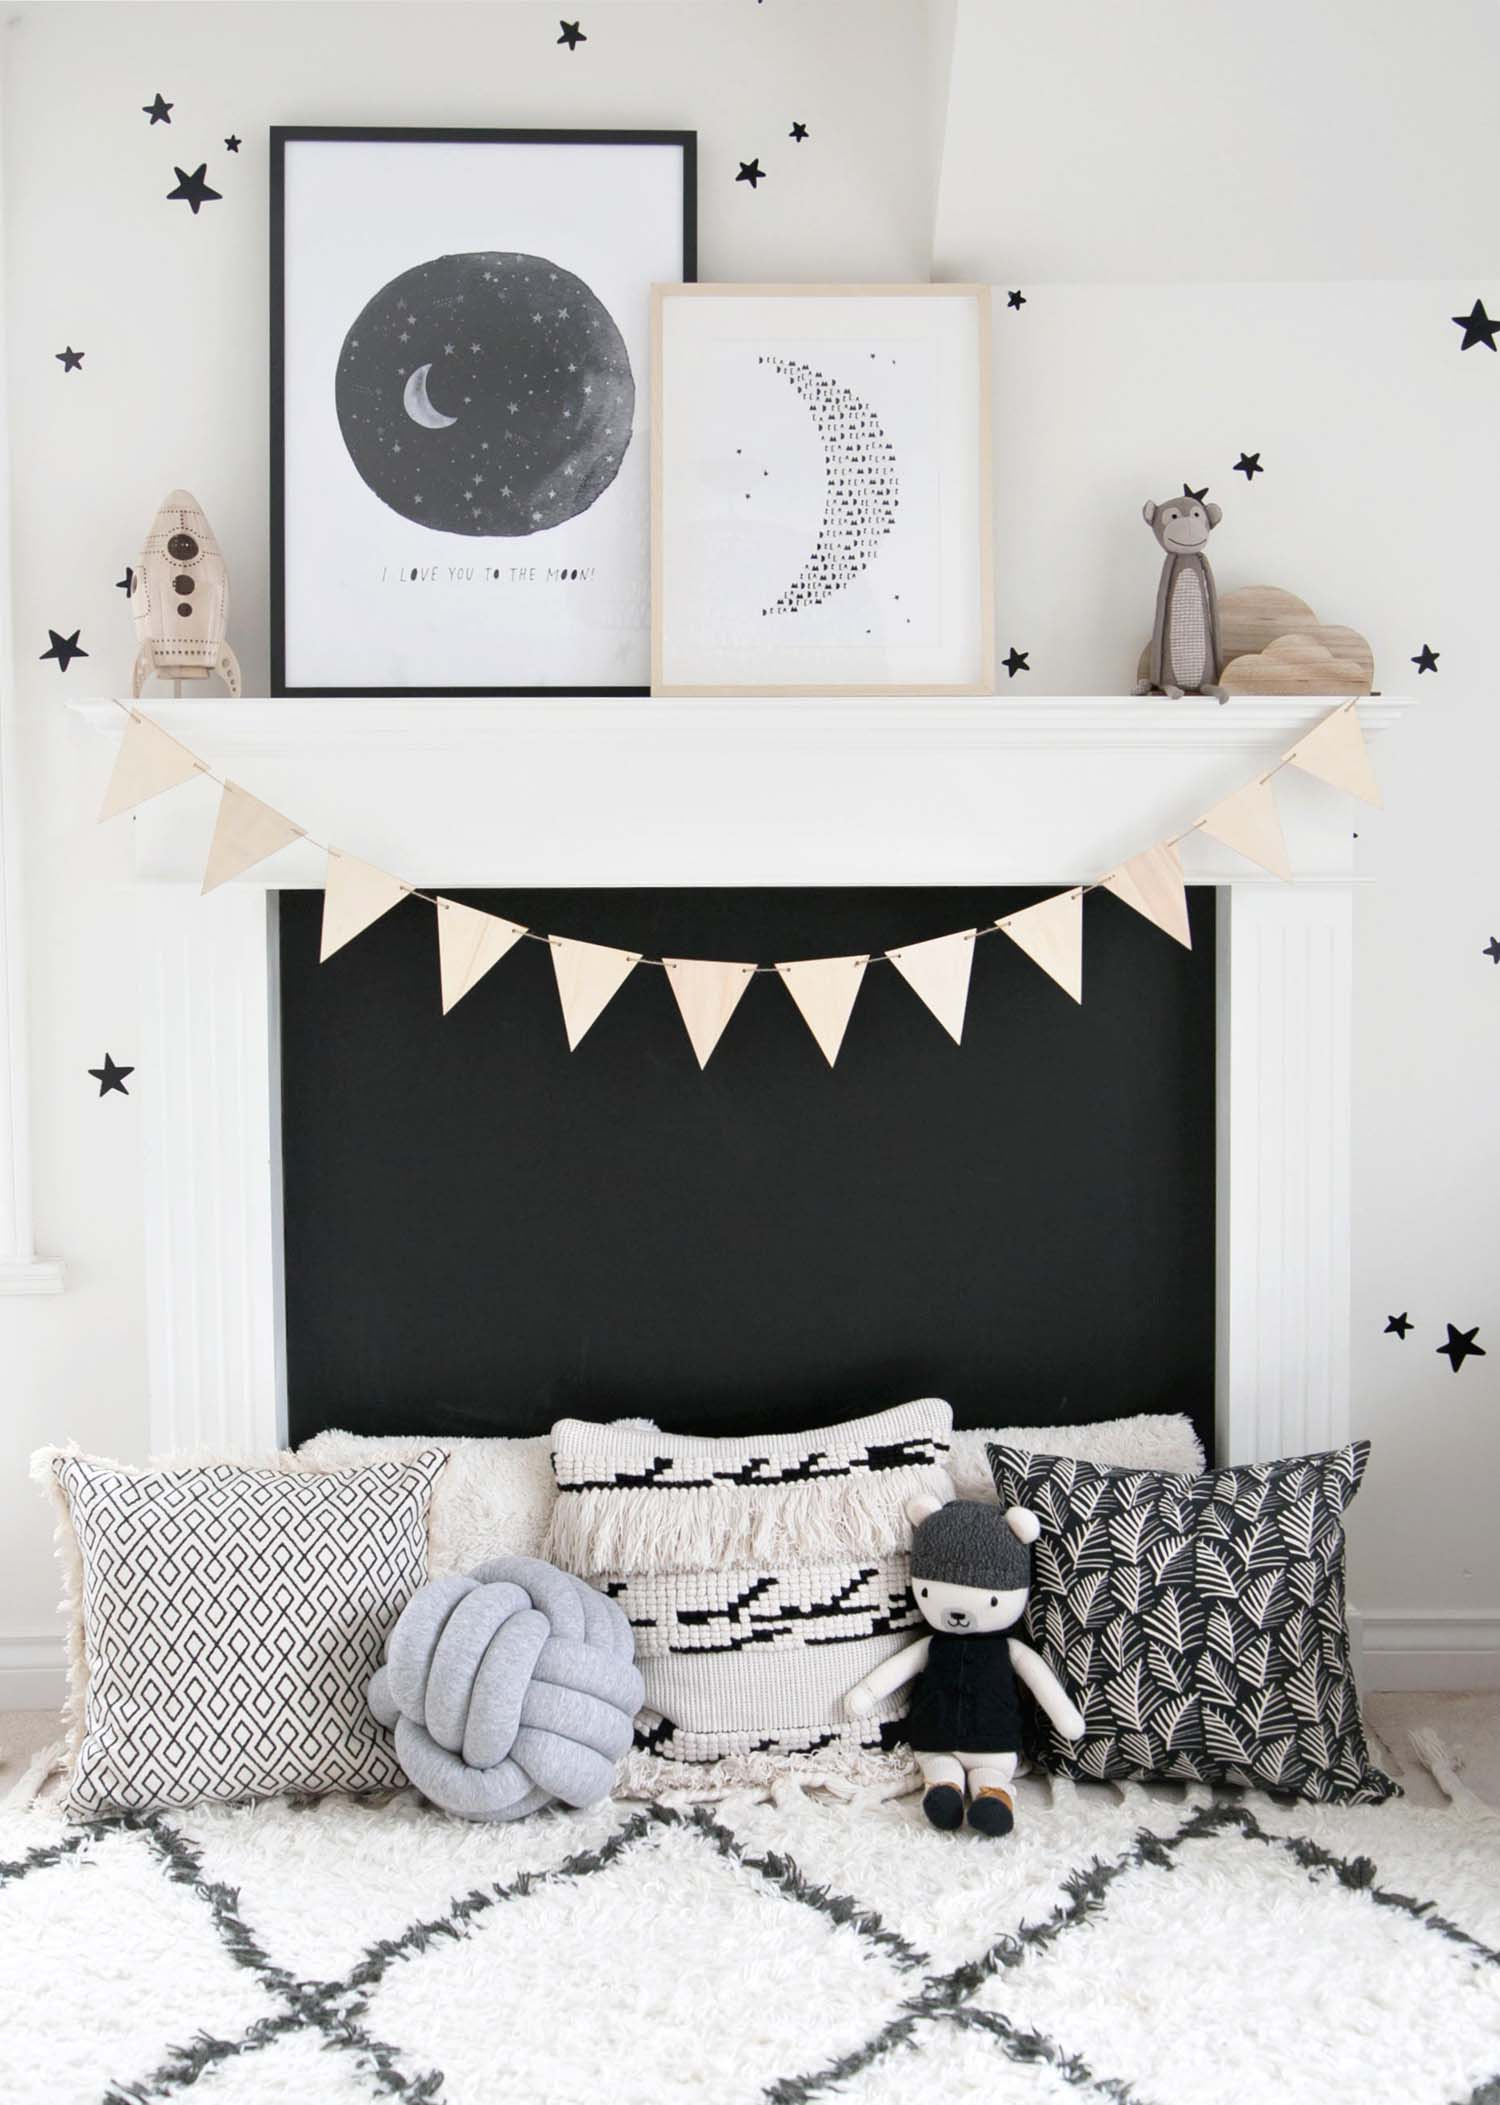 Chalkboard fireplace with art, garland and pillows